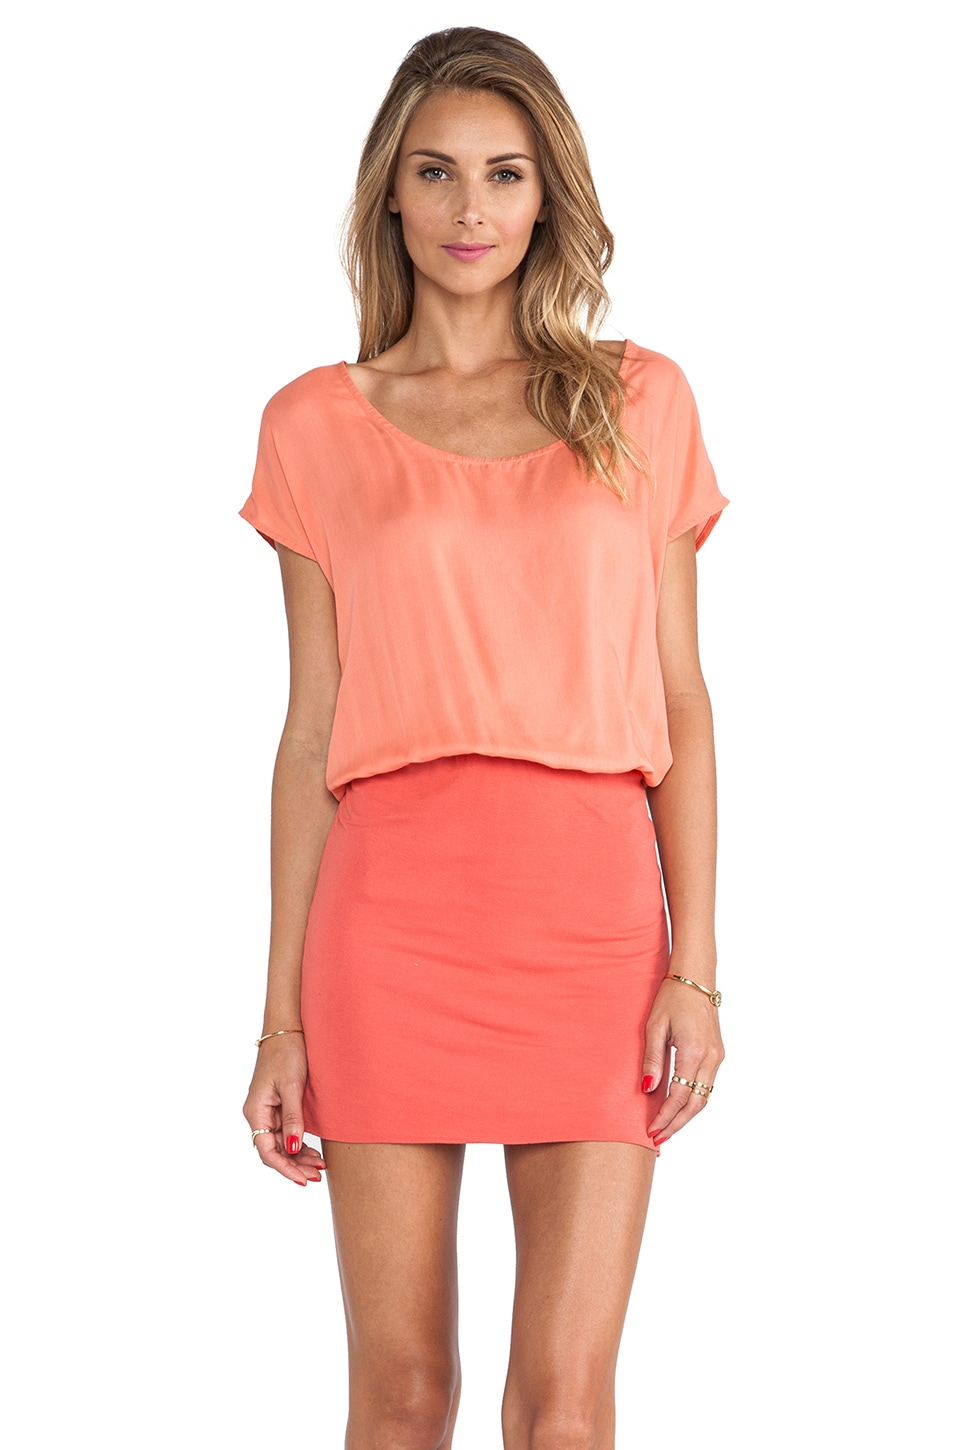 Soft Joie Brix Dress in Sandy Coral